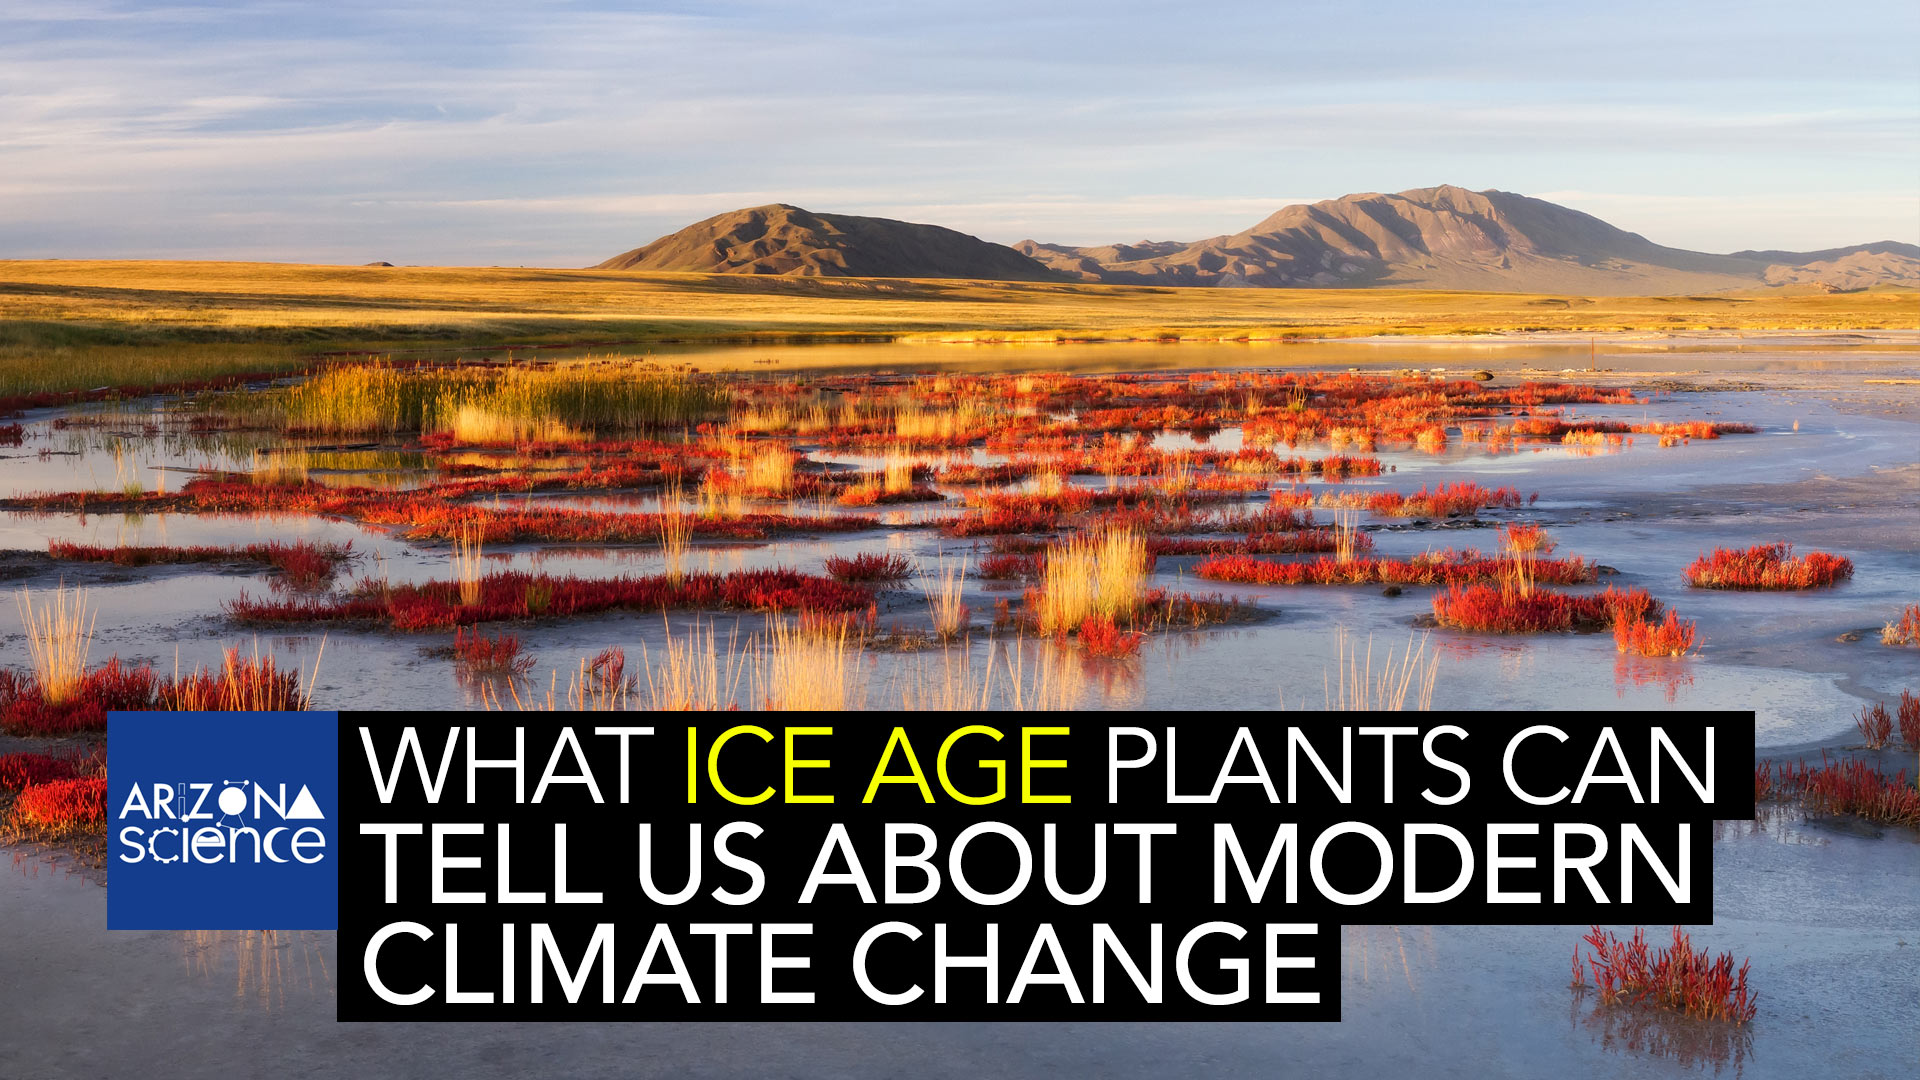 The director of the Southwest Climate Adaptation Center in Tucson, Steven Jackson, believes vegetation from the ice age can tell us about looming dangers of modern climate change.